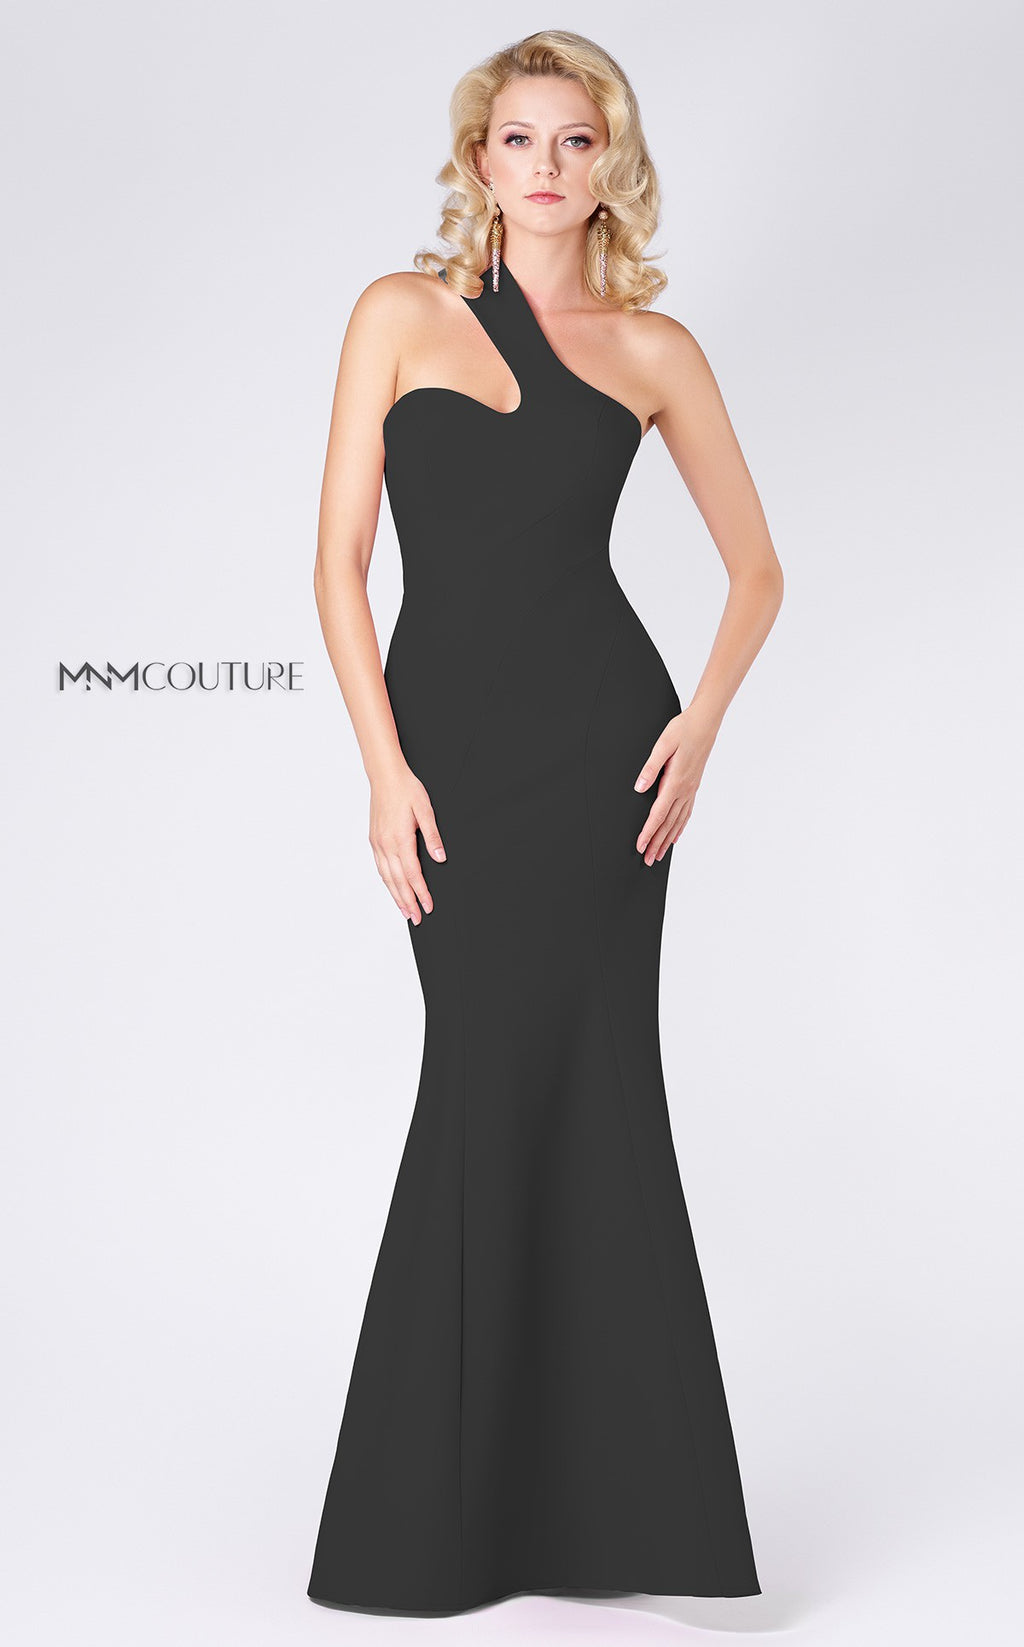 MNM Couture M0003 Asymmetric One Shoulder Evening Dress - CYC Boutique